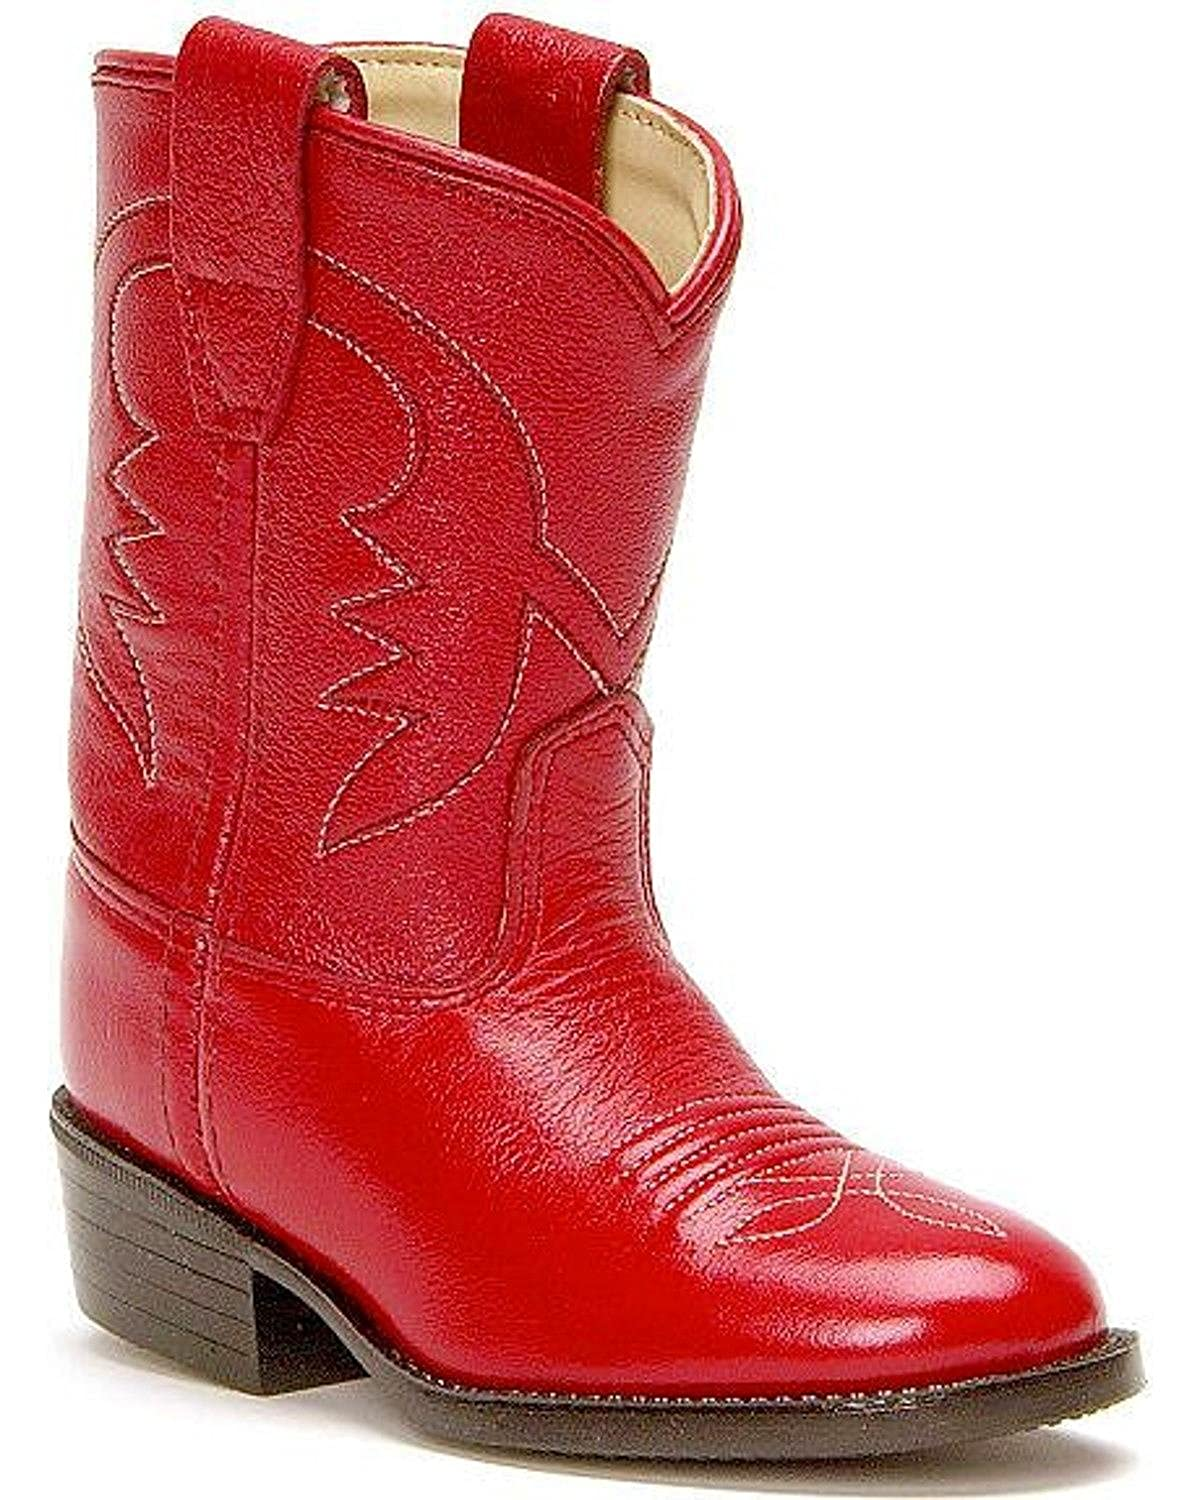 M Old West Toddler-Girls Cowboy Boot Red 8 D US 3116